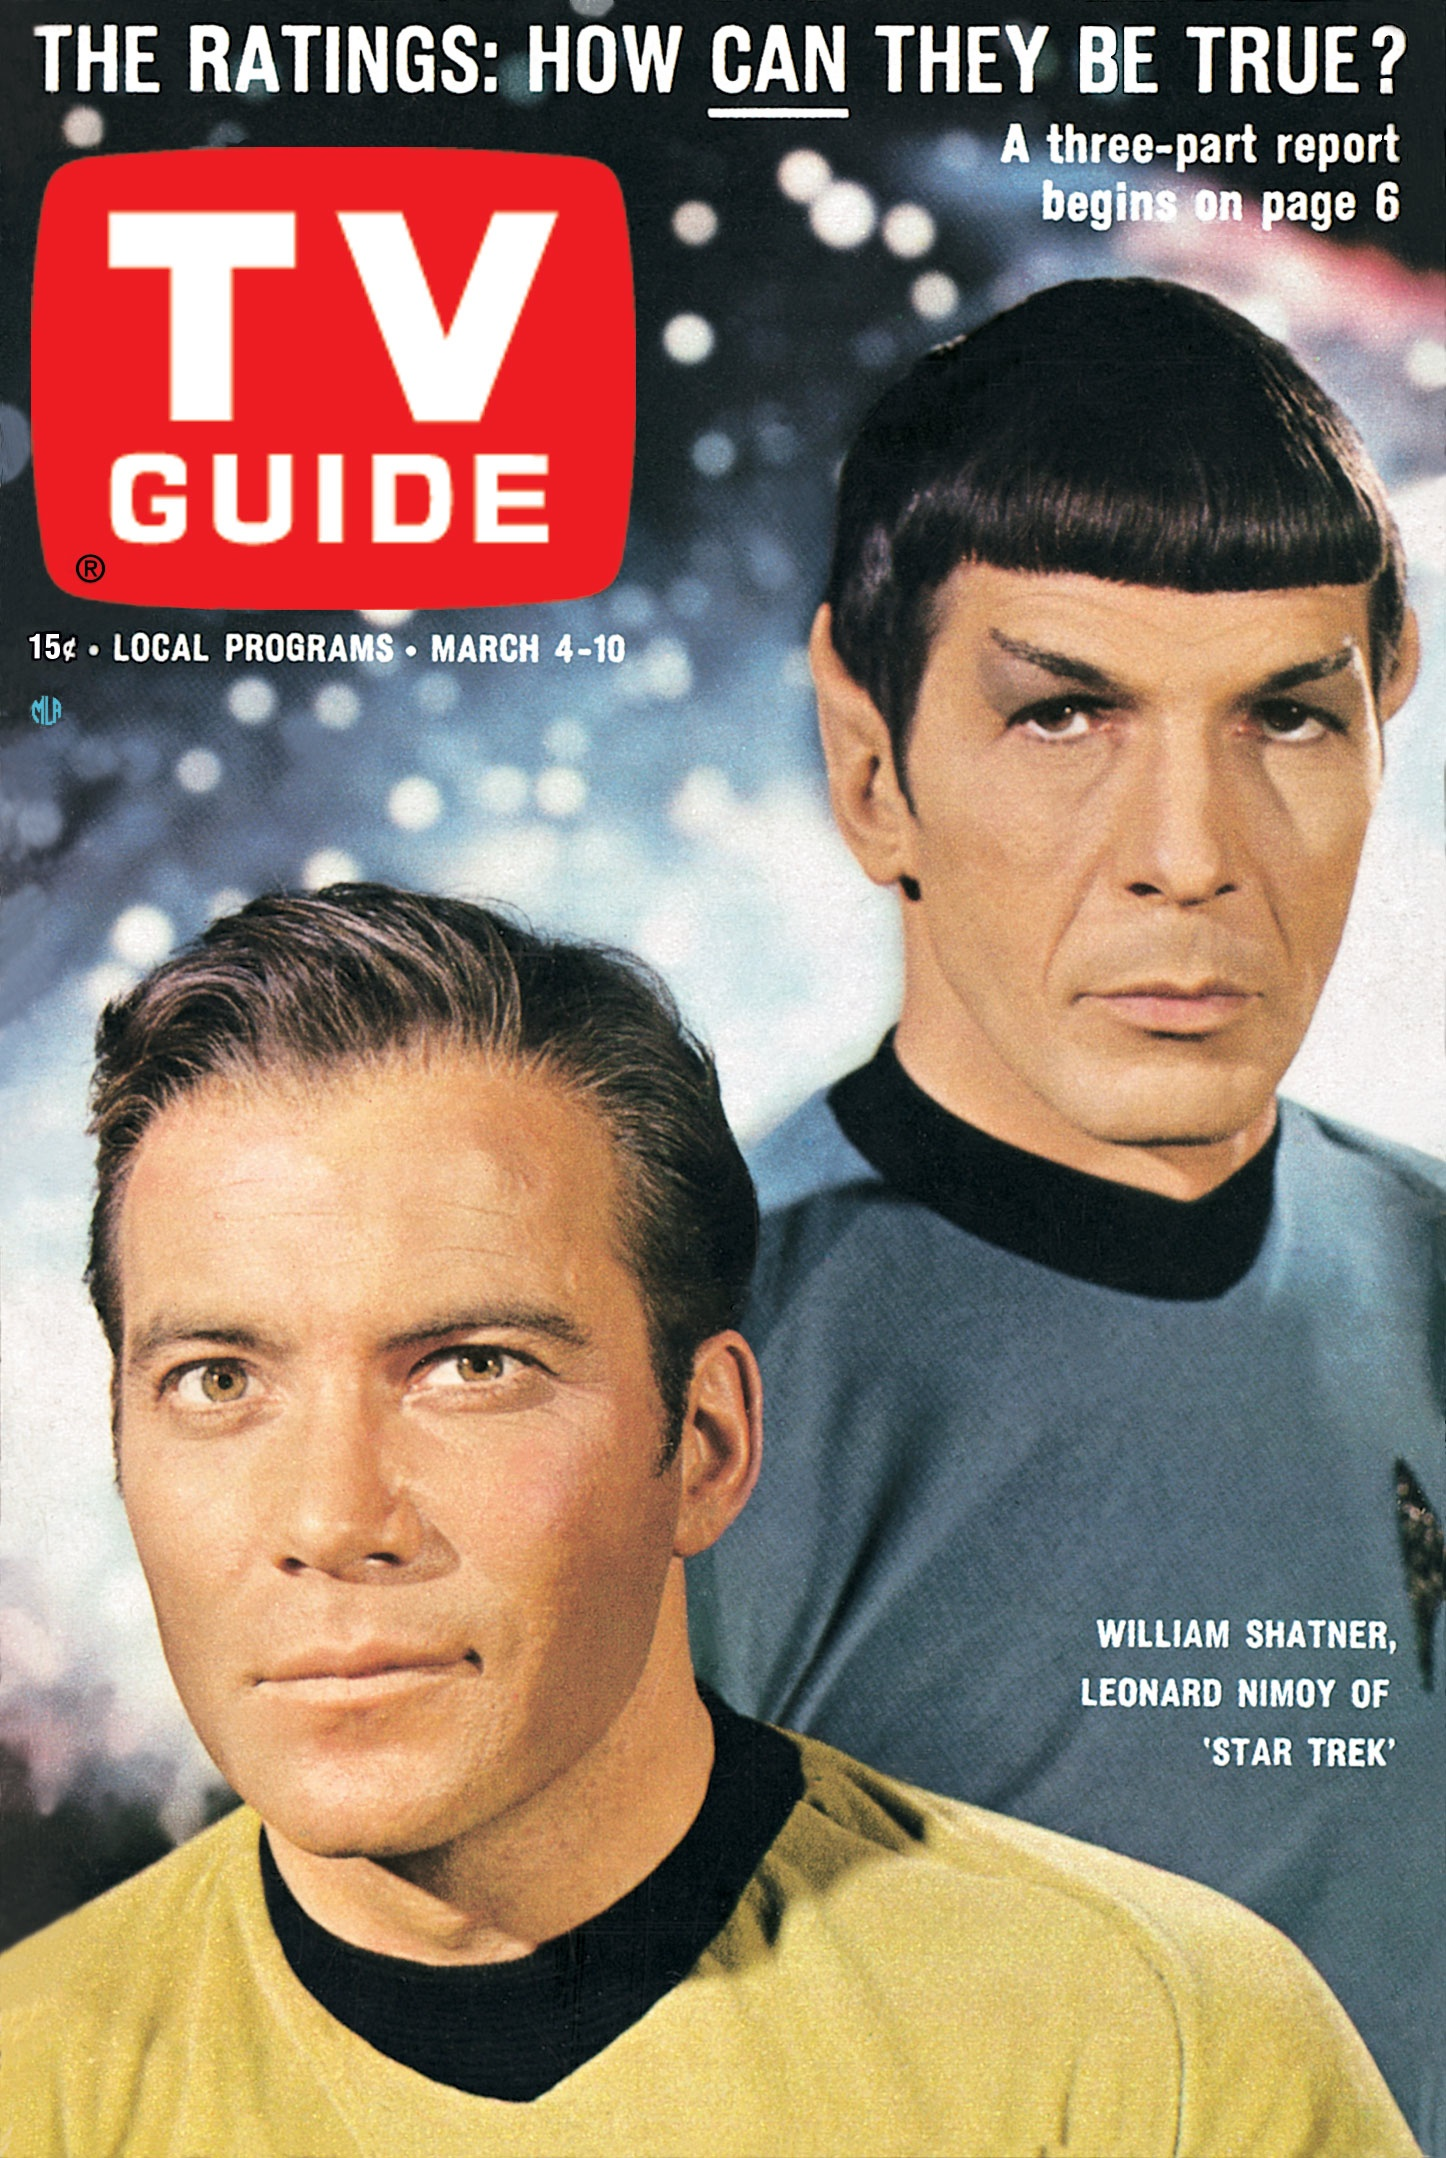 star trek s first tv guide cover mission log podcast rh missionlogpodcast com Life Magazine Cover This Week Life Magazine Cover This Week